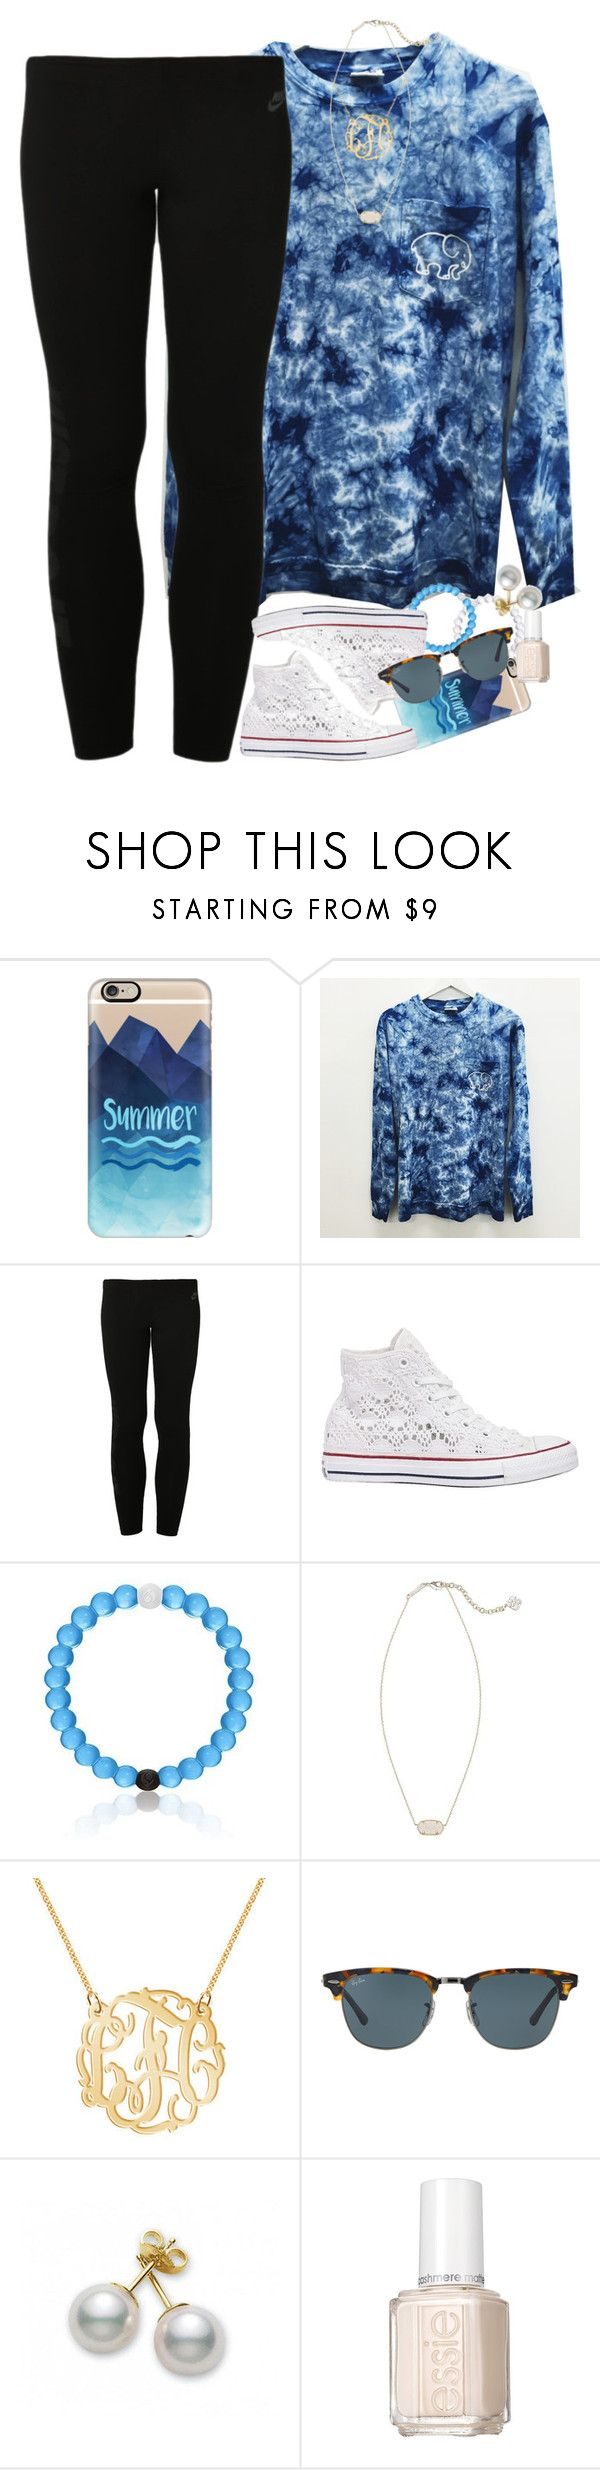 """""""save the elephants"""" by smbprep ❤ liked on Polyvore featuring Casetify, NIKE, Converse, Kendra Scott, Ray-Ban, Mikimoto, Essie, SavetheElephants and Ivoryella"""